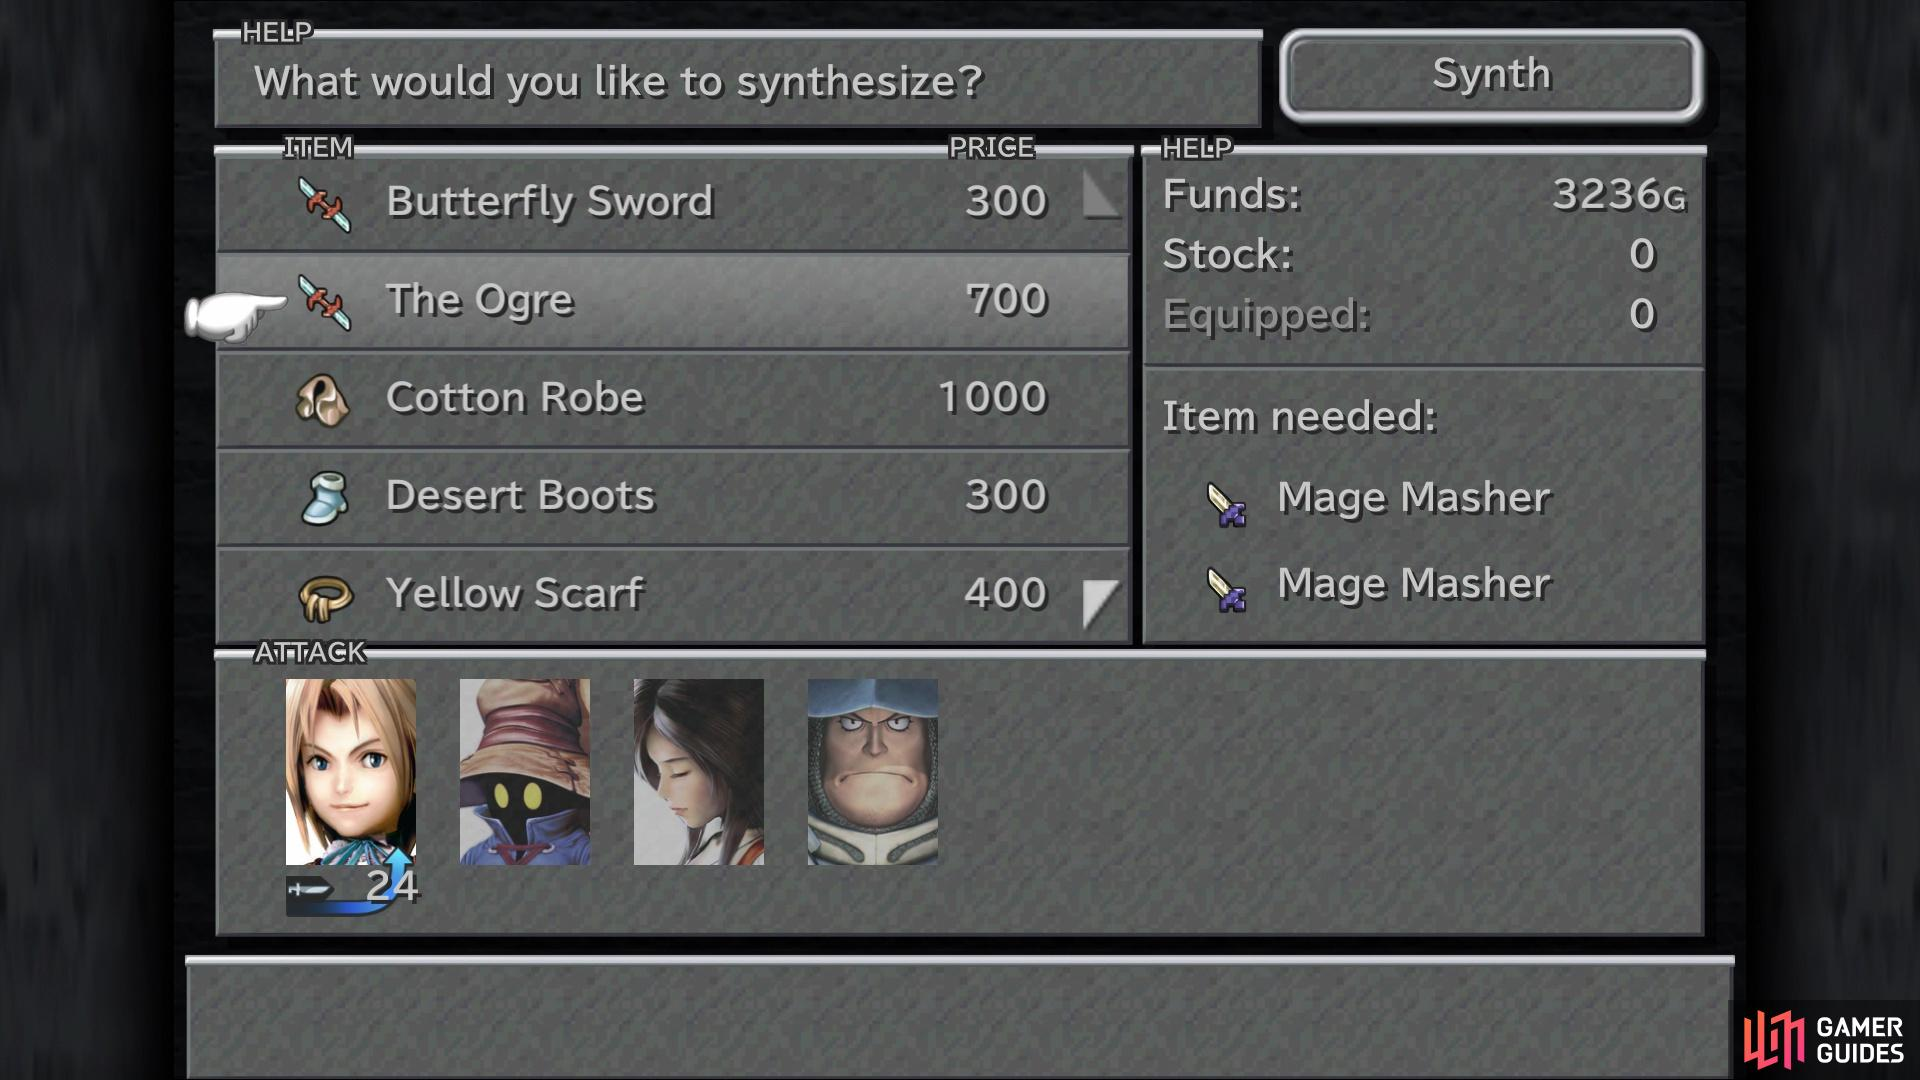 Synthesis can allow you to get some nice gear earlier than usual